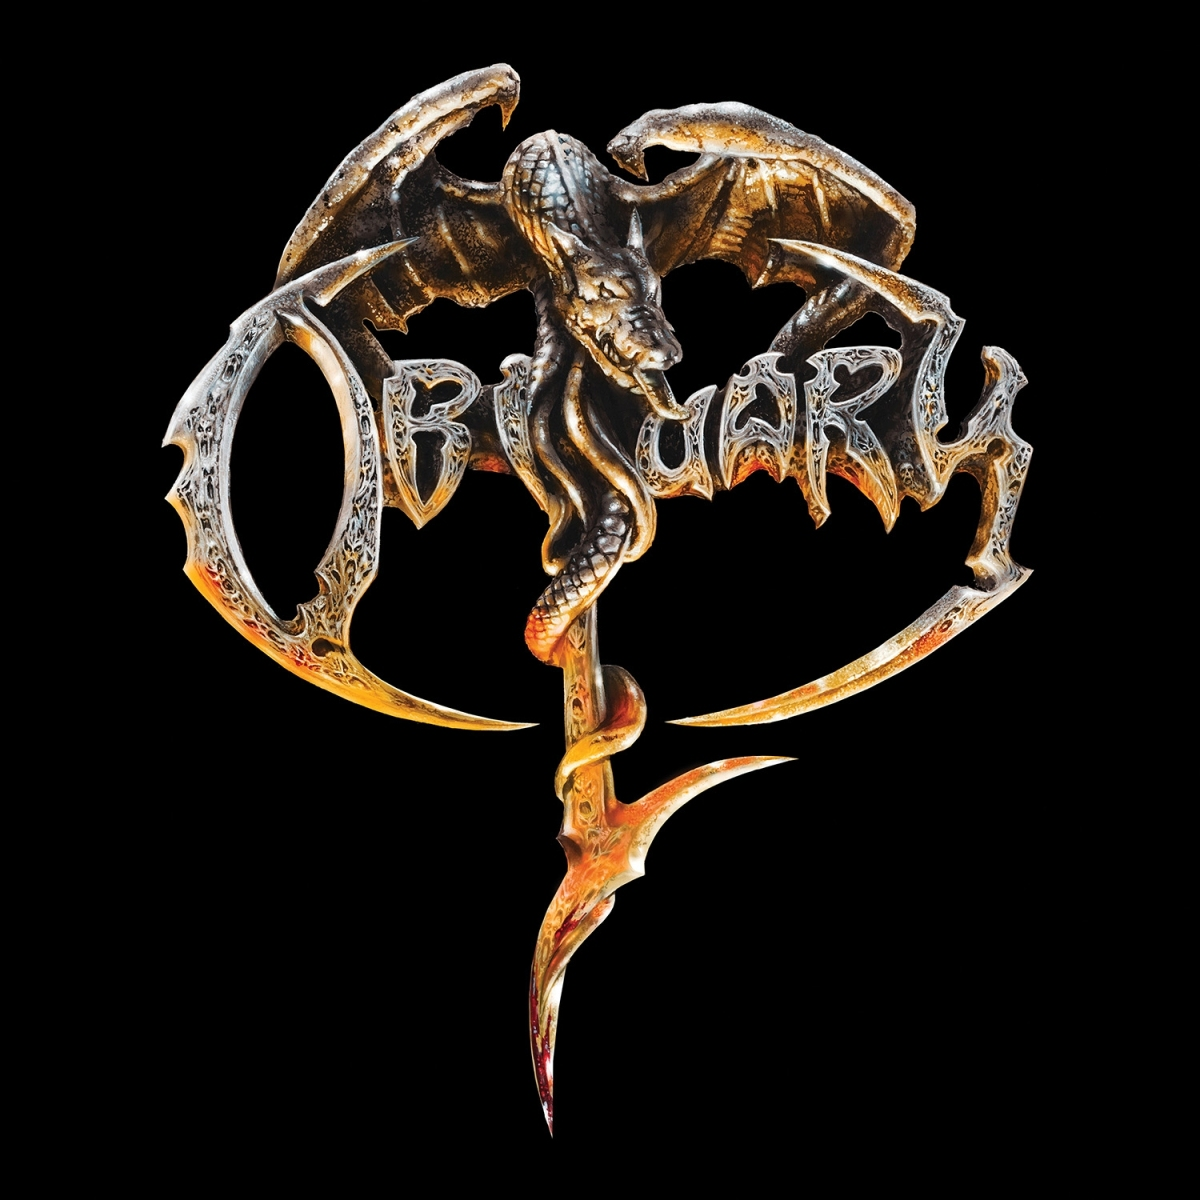 Obituary – Obituary CD Review